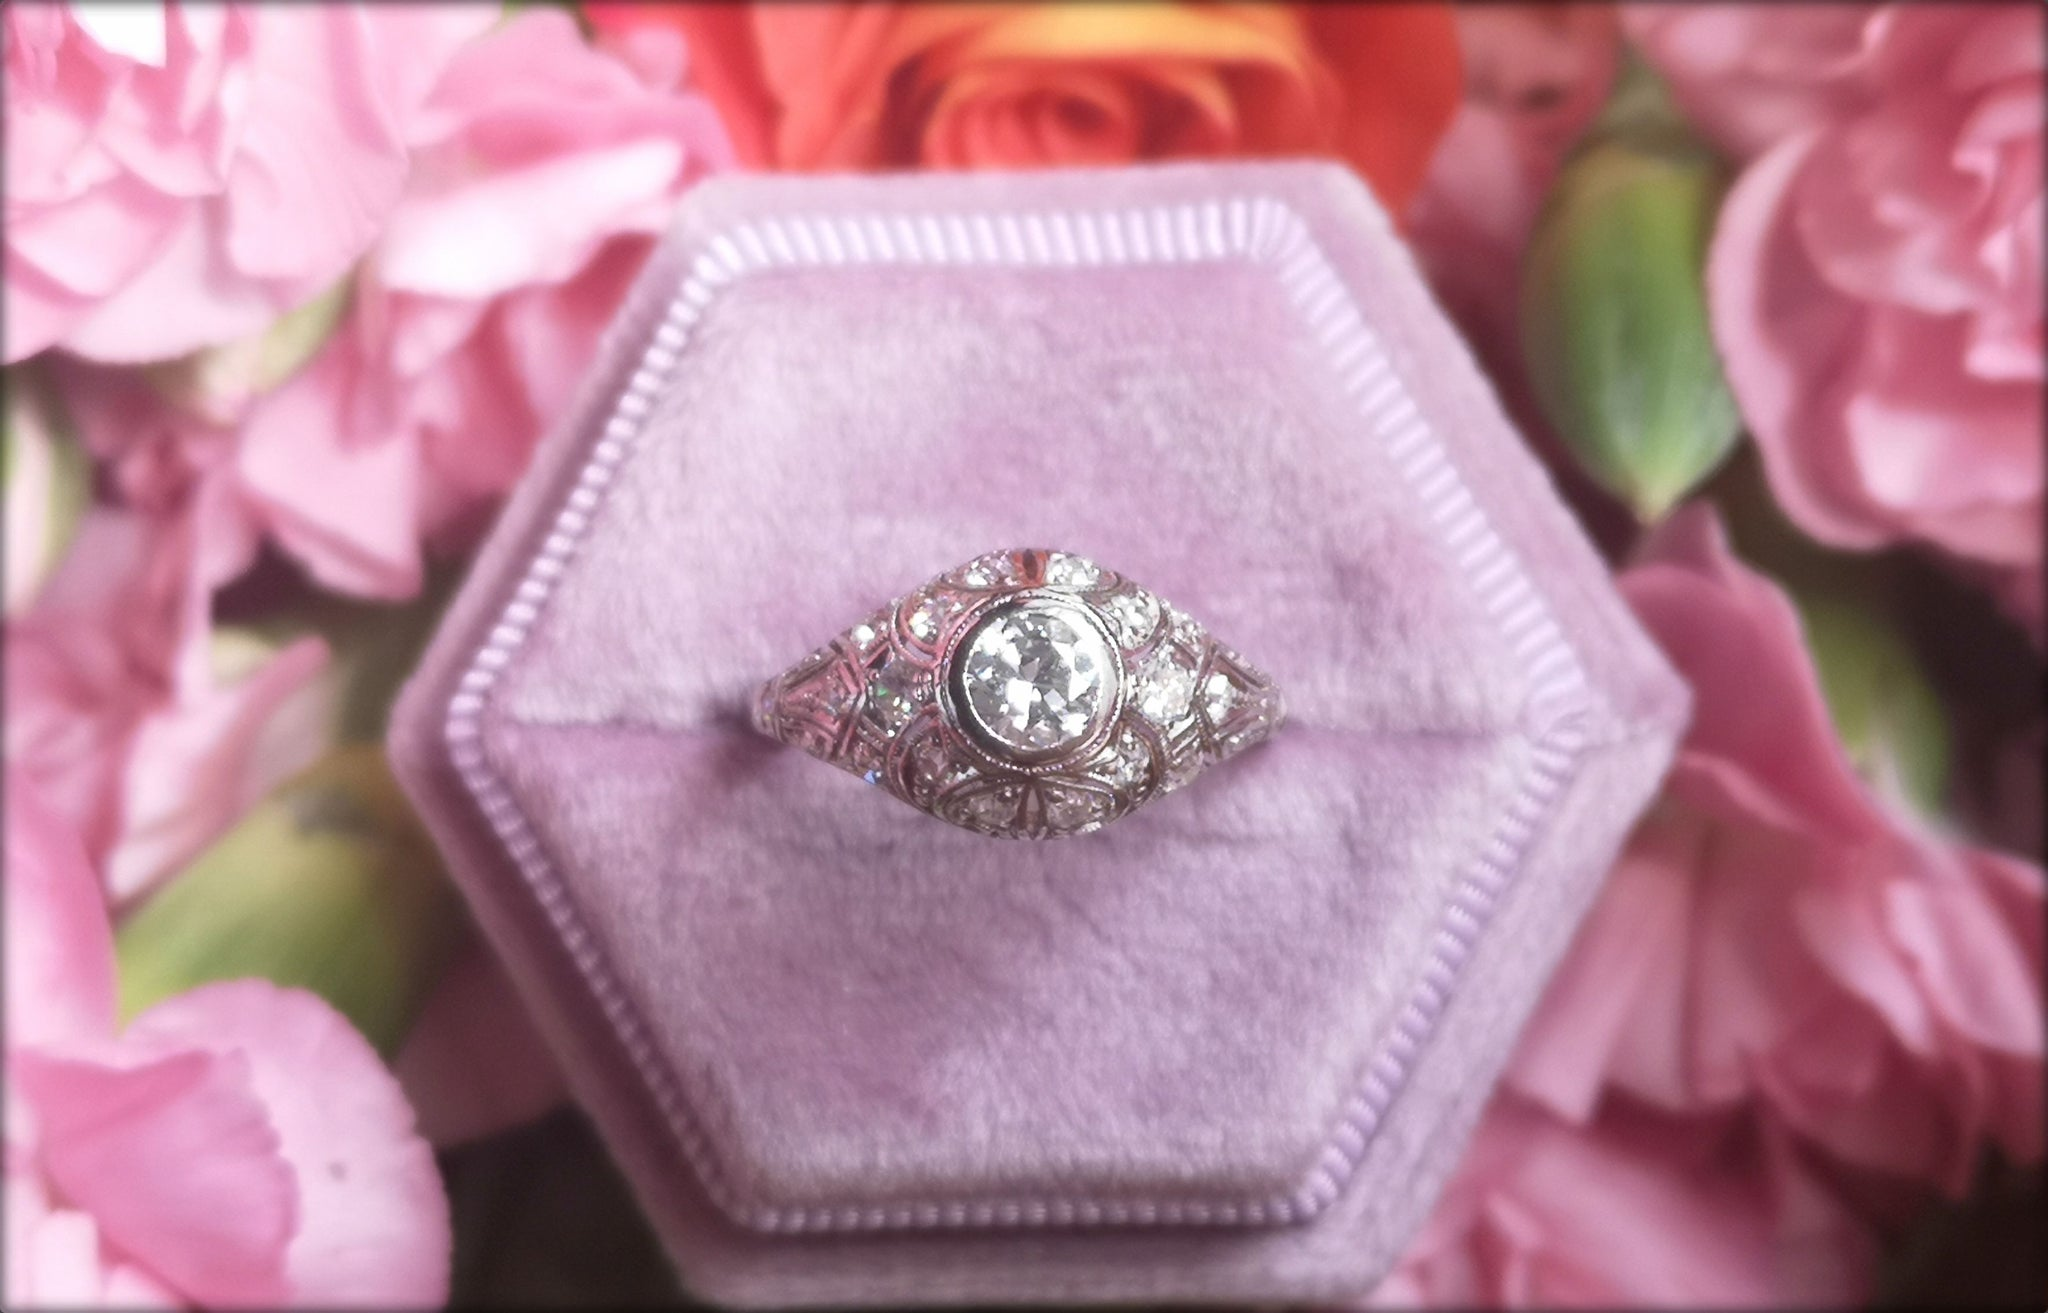 Art Deco 1920s 0.75tcw G/VS Old Cut Diamond Engagement Ring in Platinum